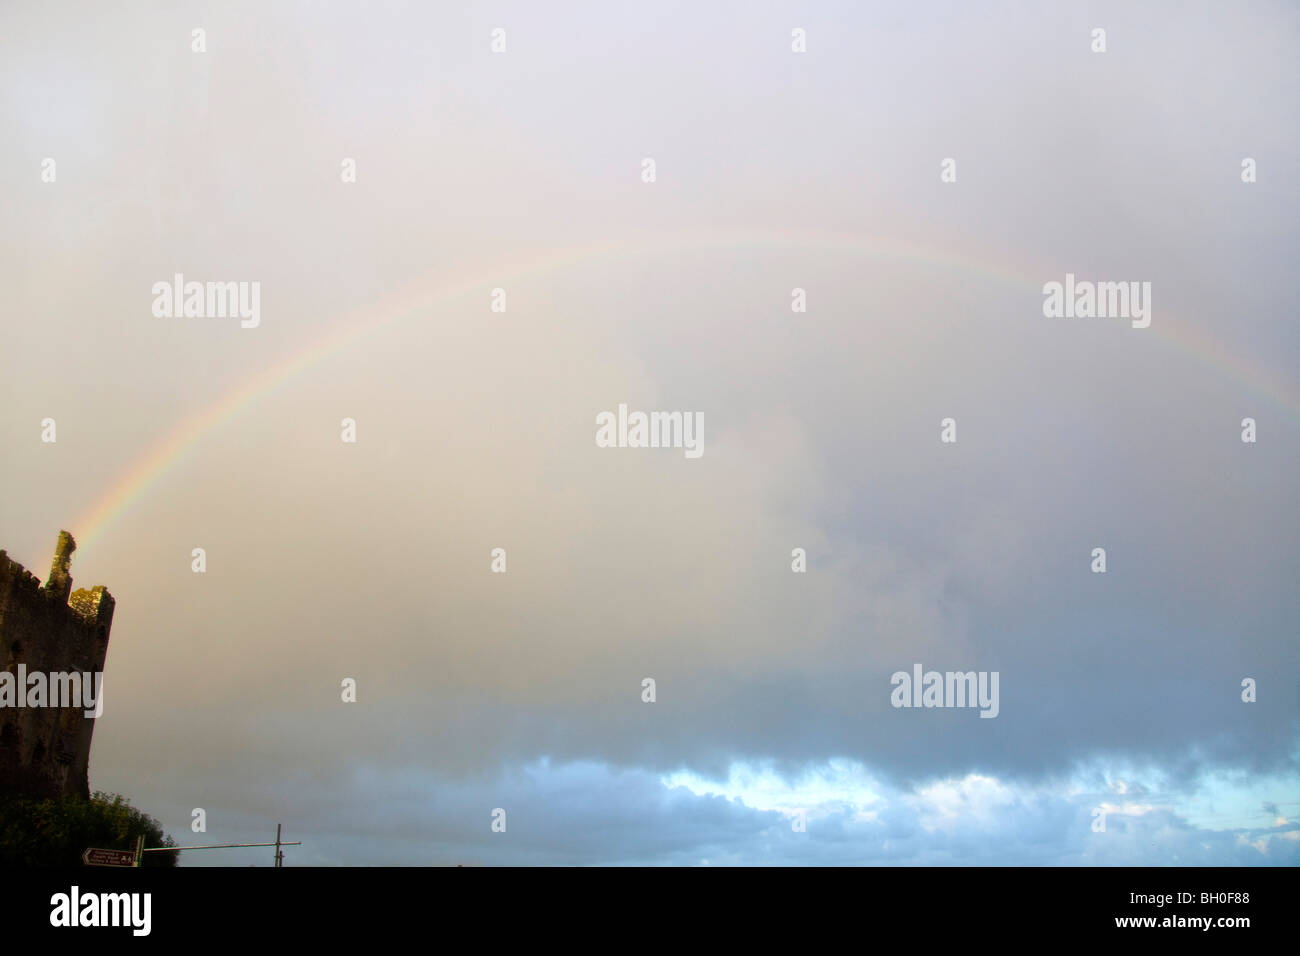 Rainbow stormy clouds Llaugharne castle Pembrokeshire Wales UK Horizontal - Stock Image